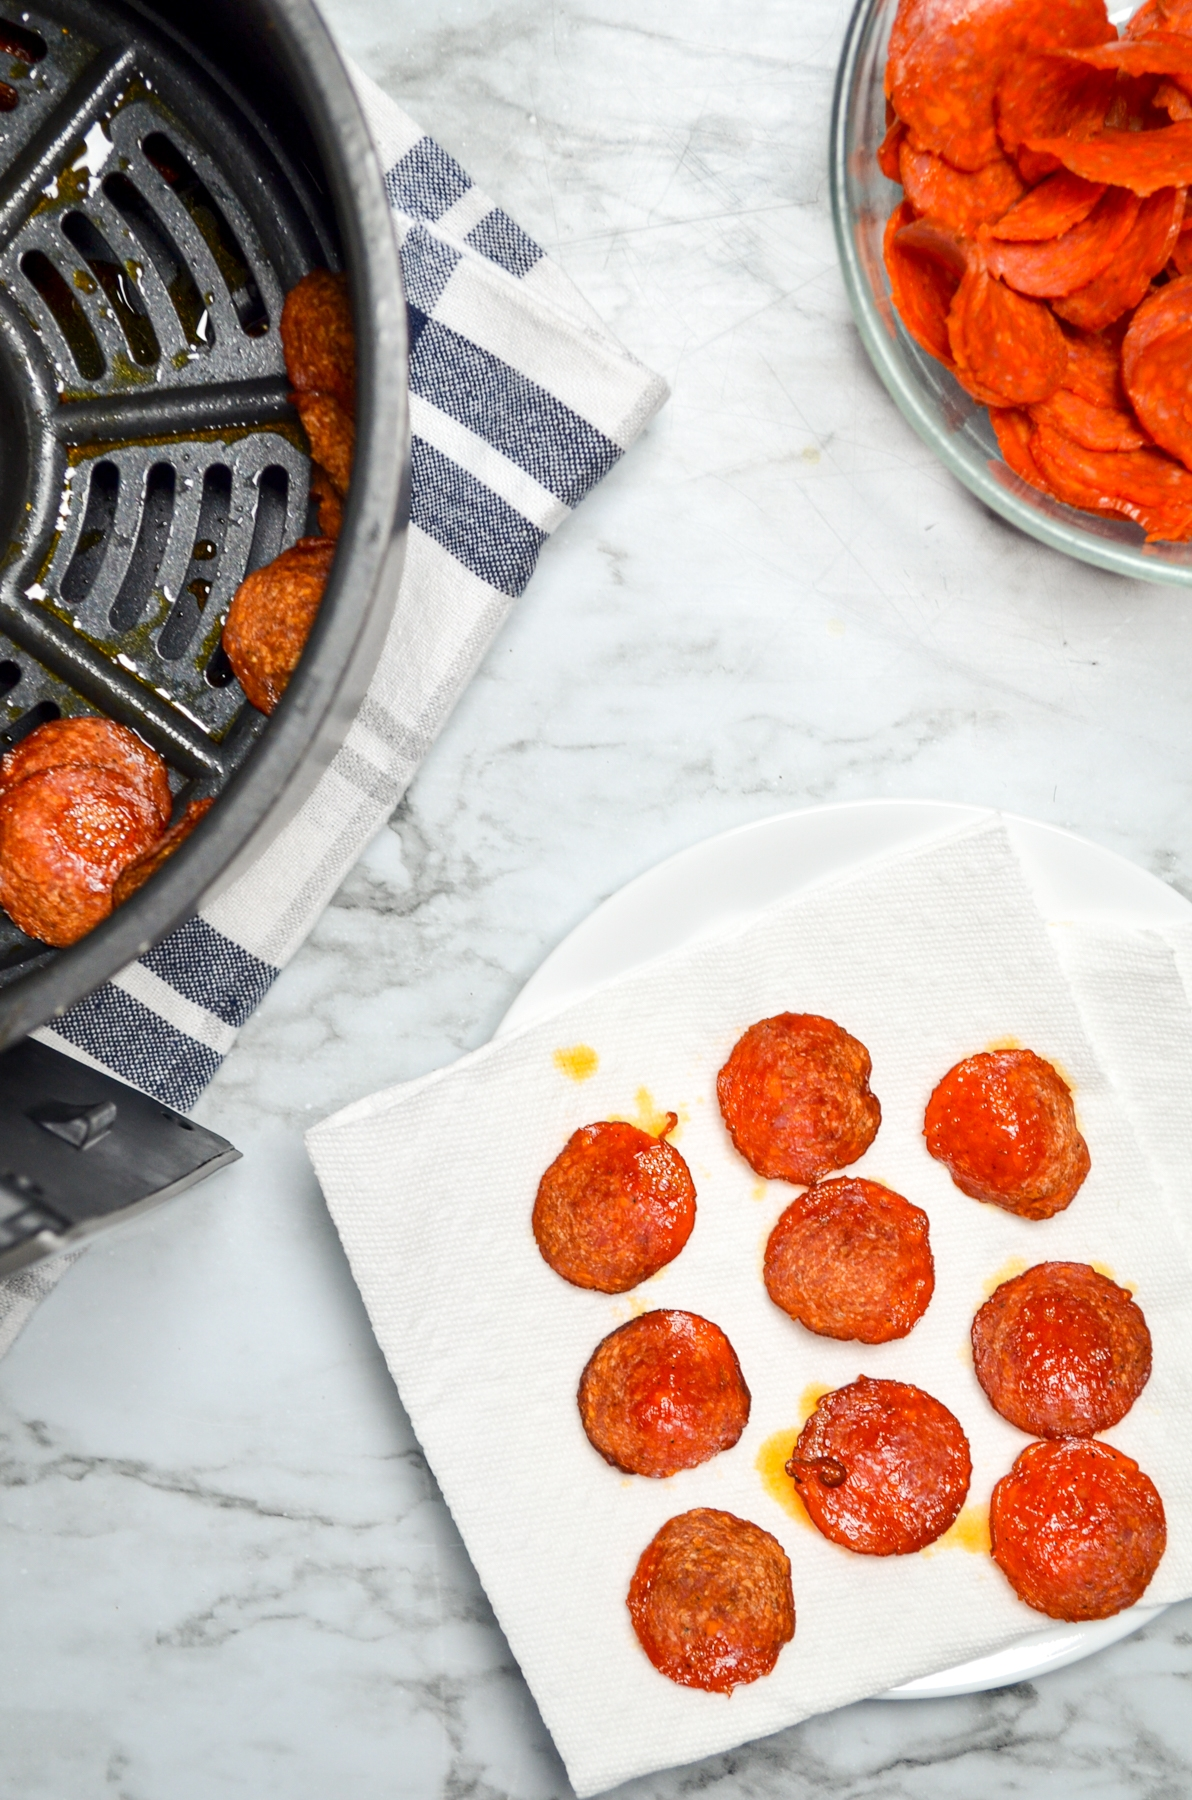 Air fryer pepperoni chips draining on paper towel to remove excess grease.